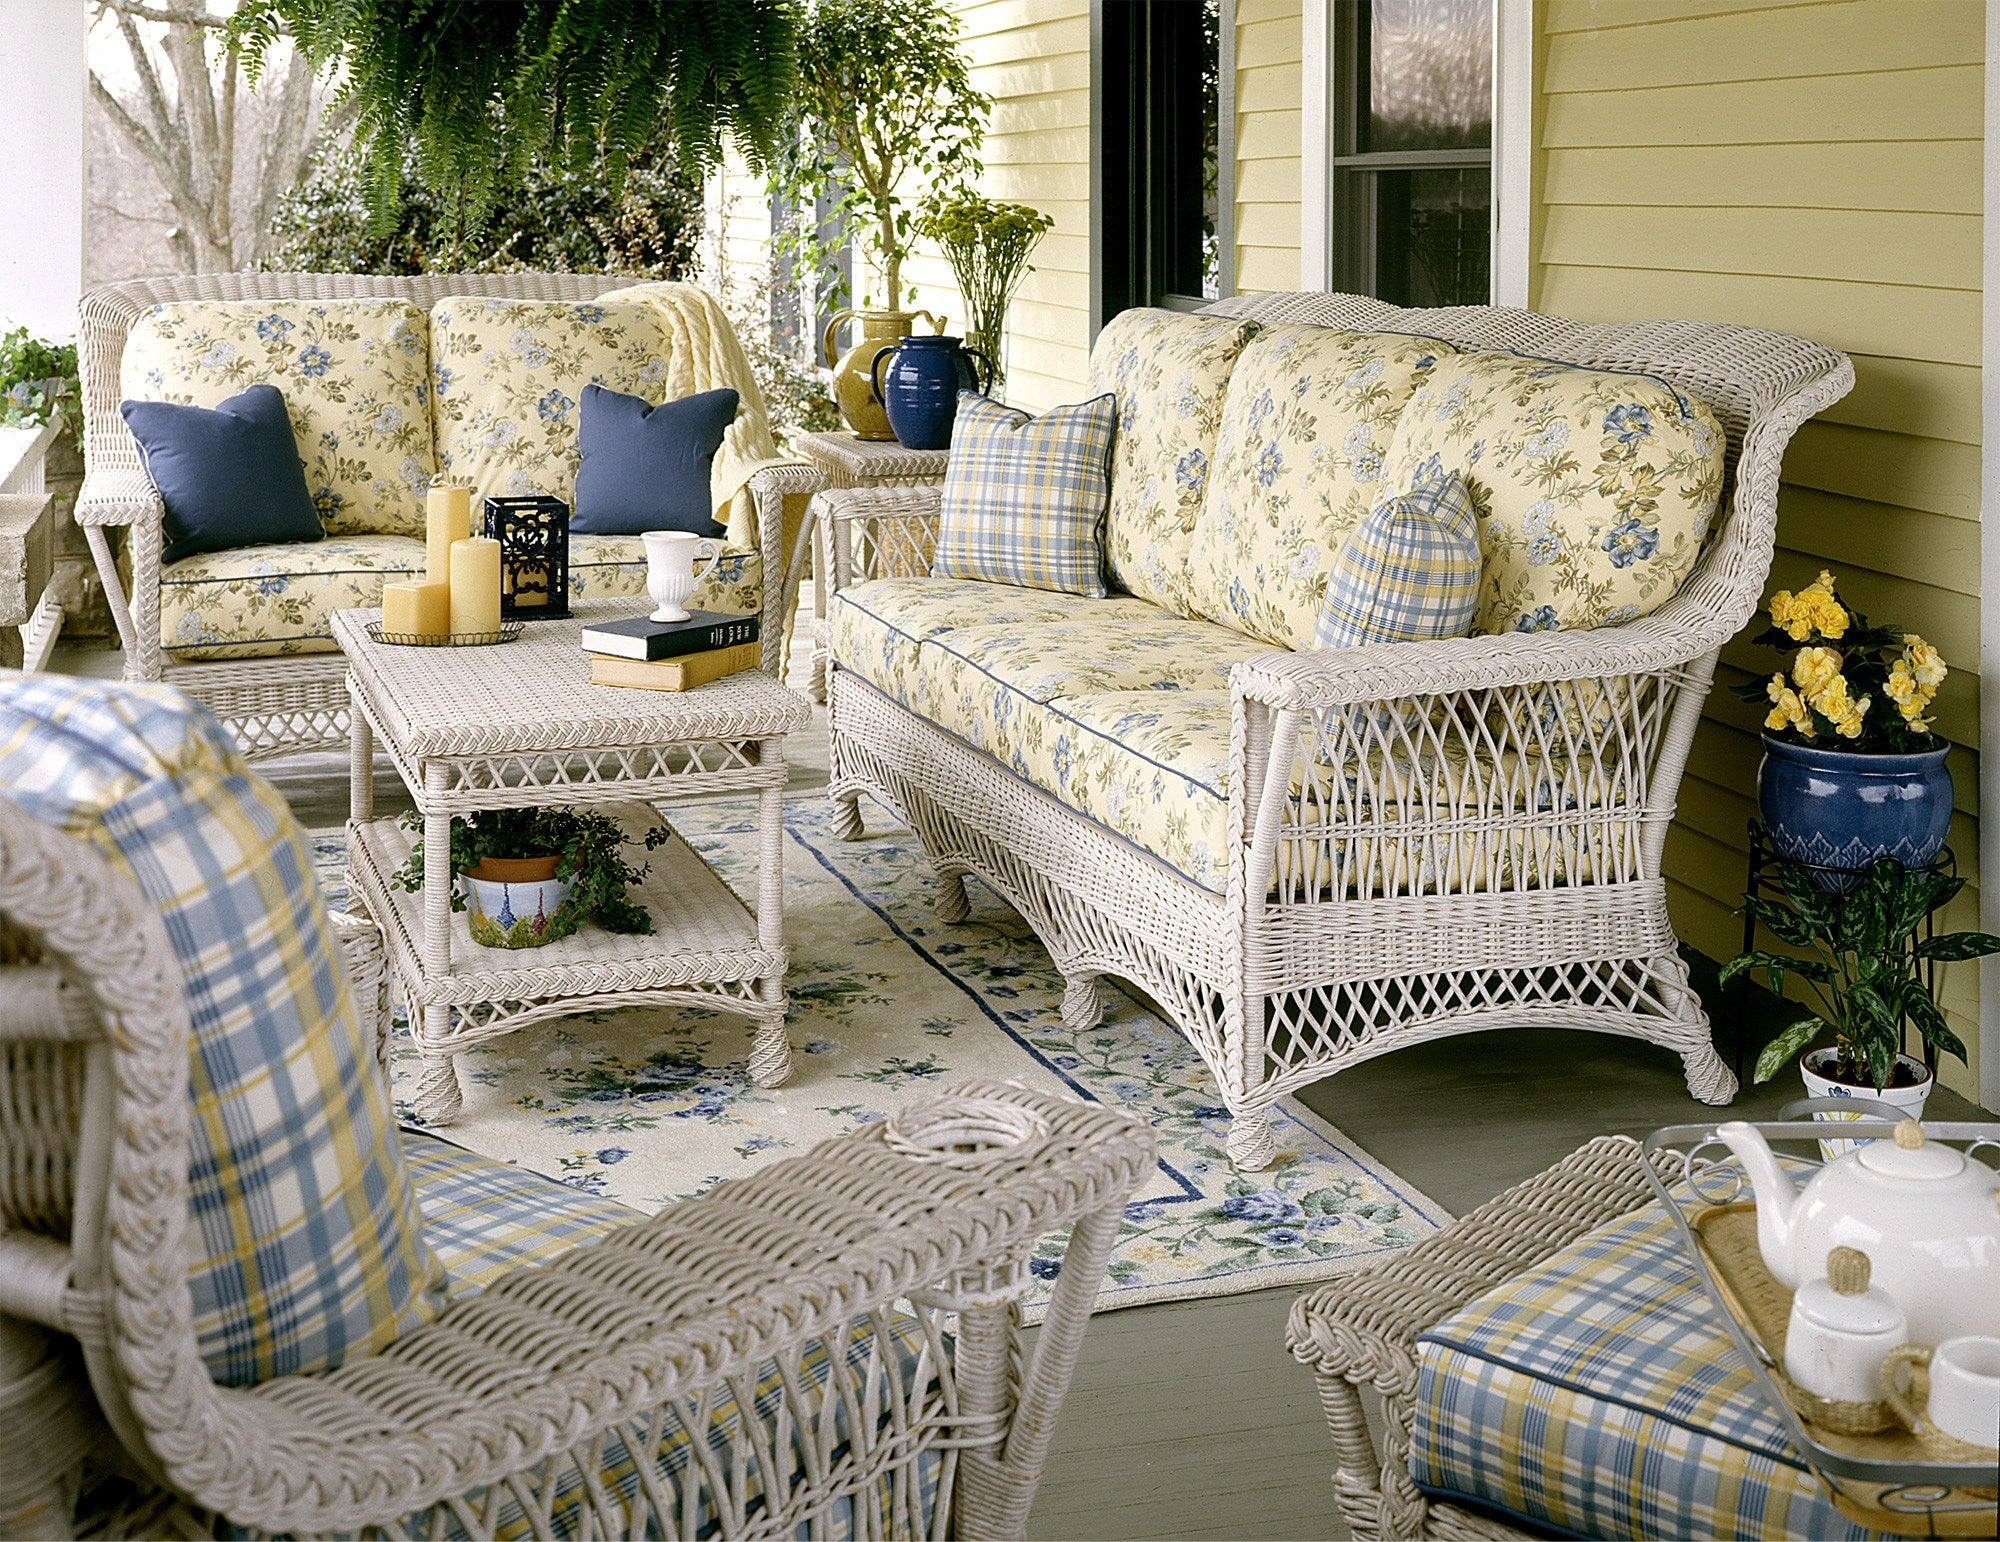 Designer Wicker & Rattan By Tribor Rockport Sofa by Designer Wicker from Tribor Sofa - Rattan Imports